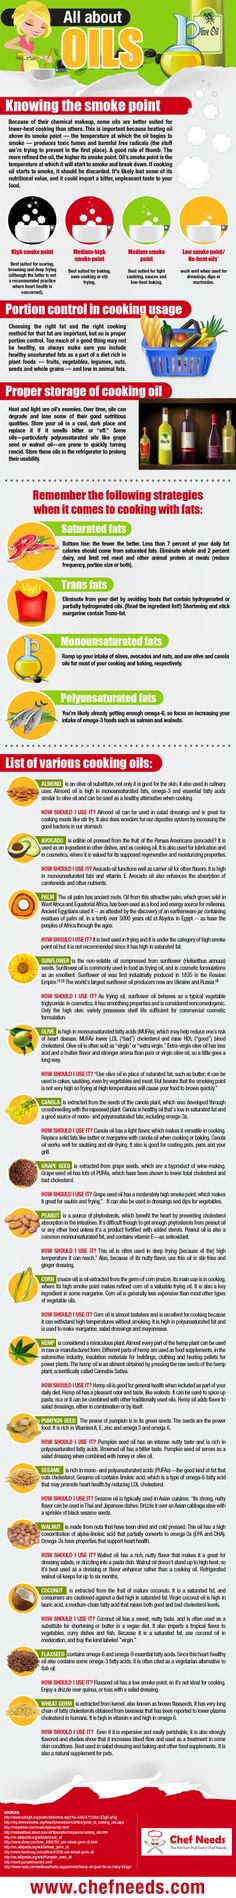 All About Oils [INFOGRAPHIC] #oils